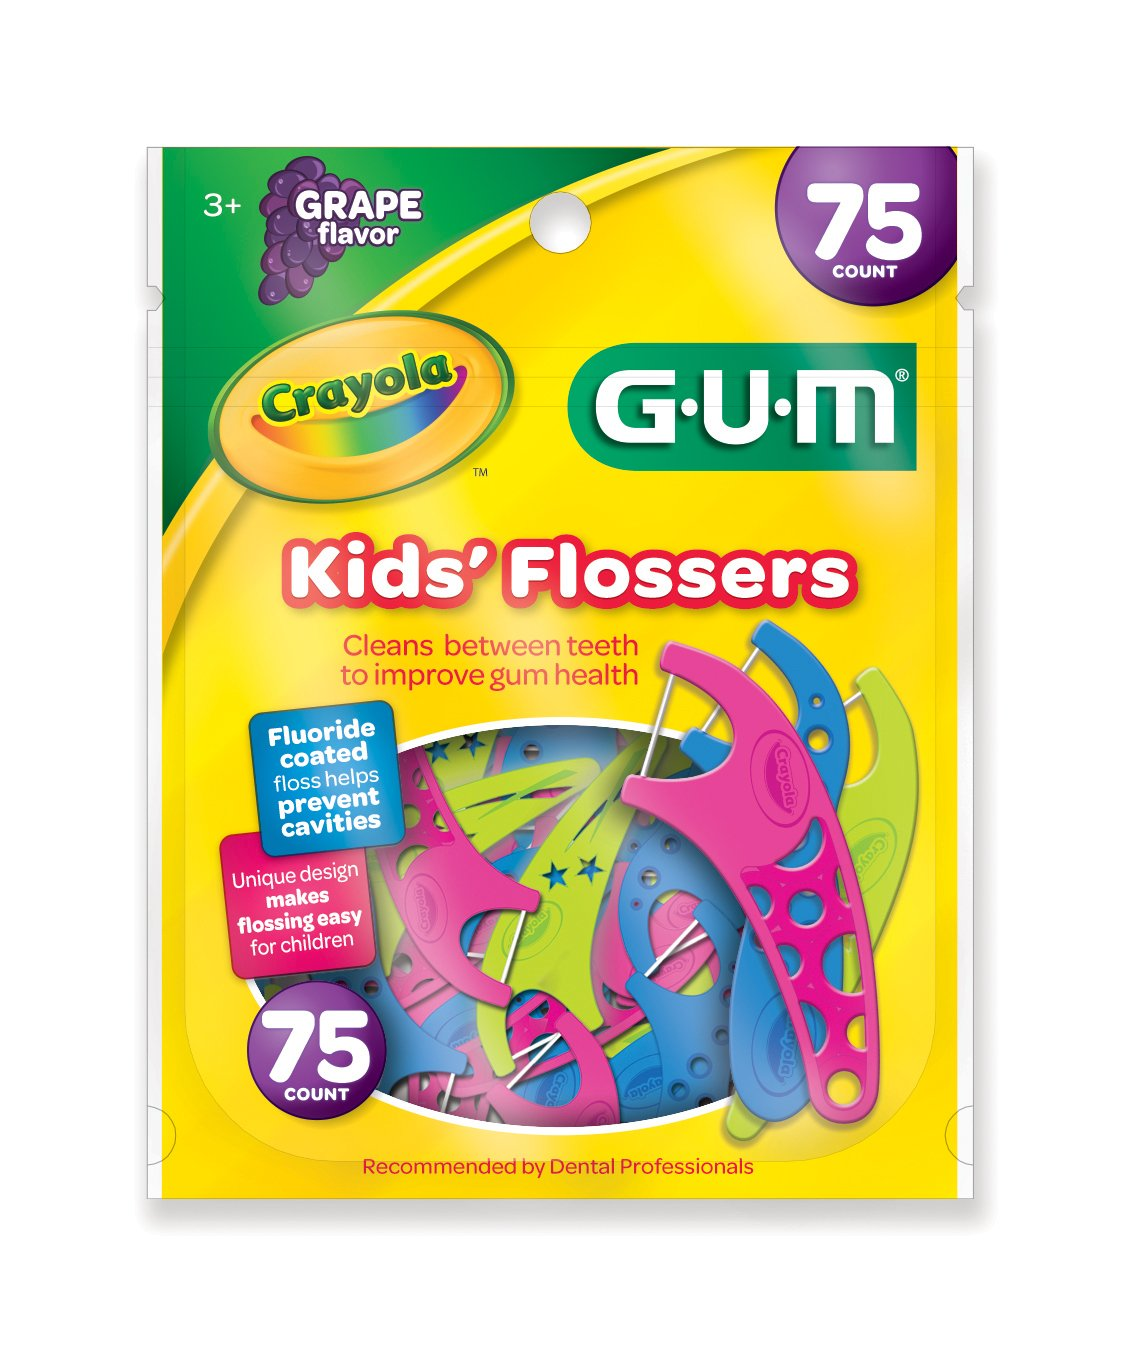 Sunstar 897RZ GUM Crayola Kids' Flosser, 75 Count, Grape Flavor